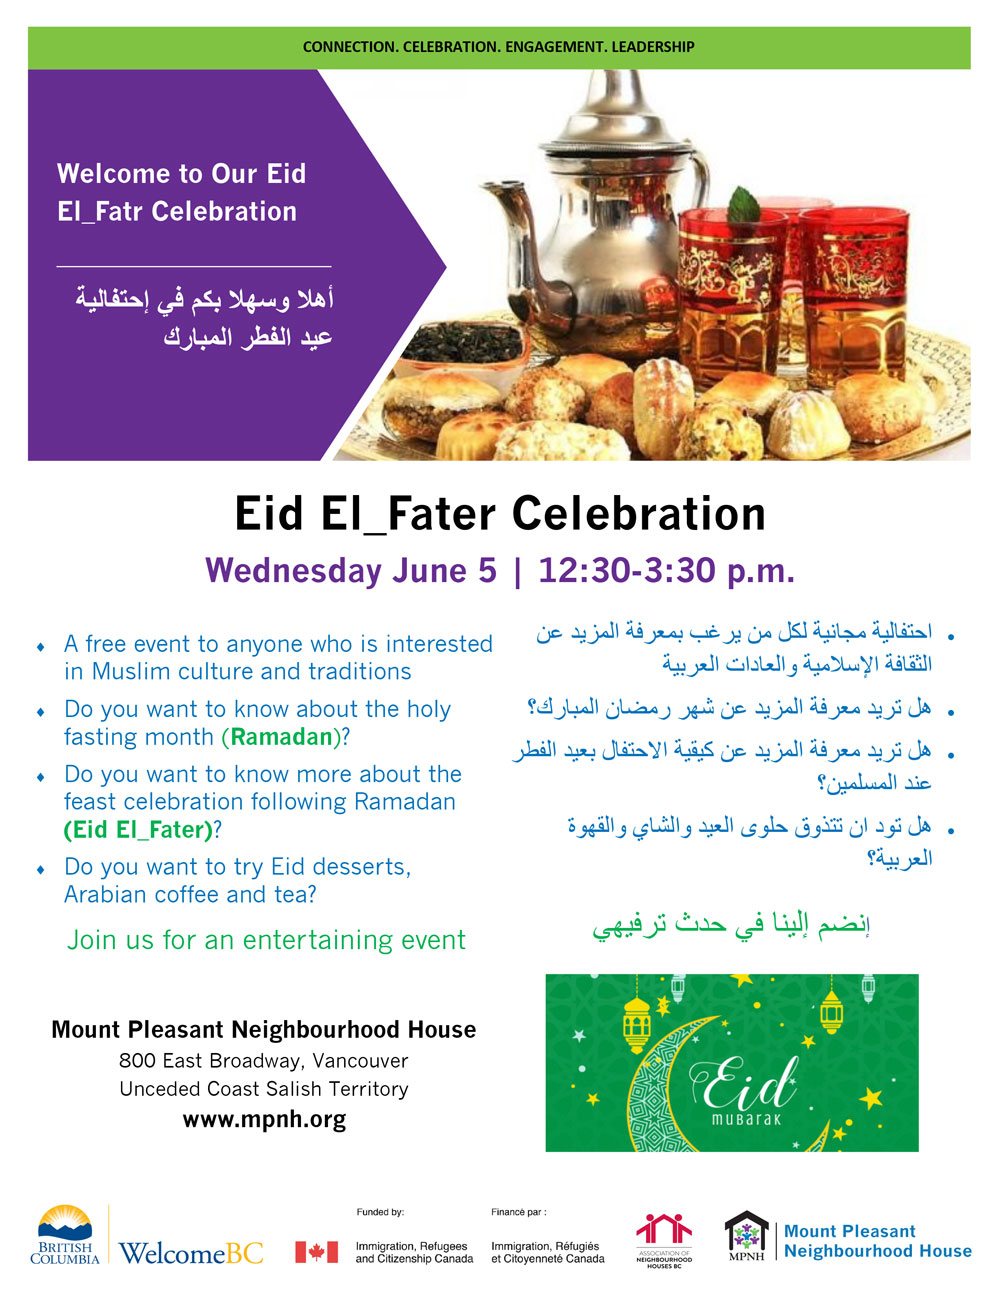 An image of the poster with event details, featuring a photo of desserts, Arabian coffee, and tea.